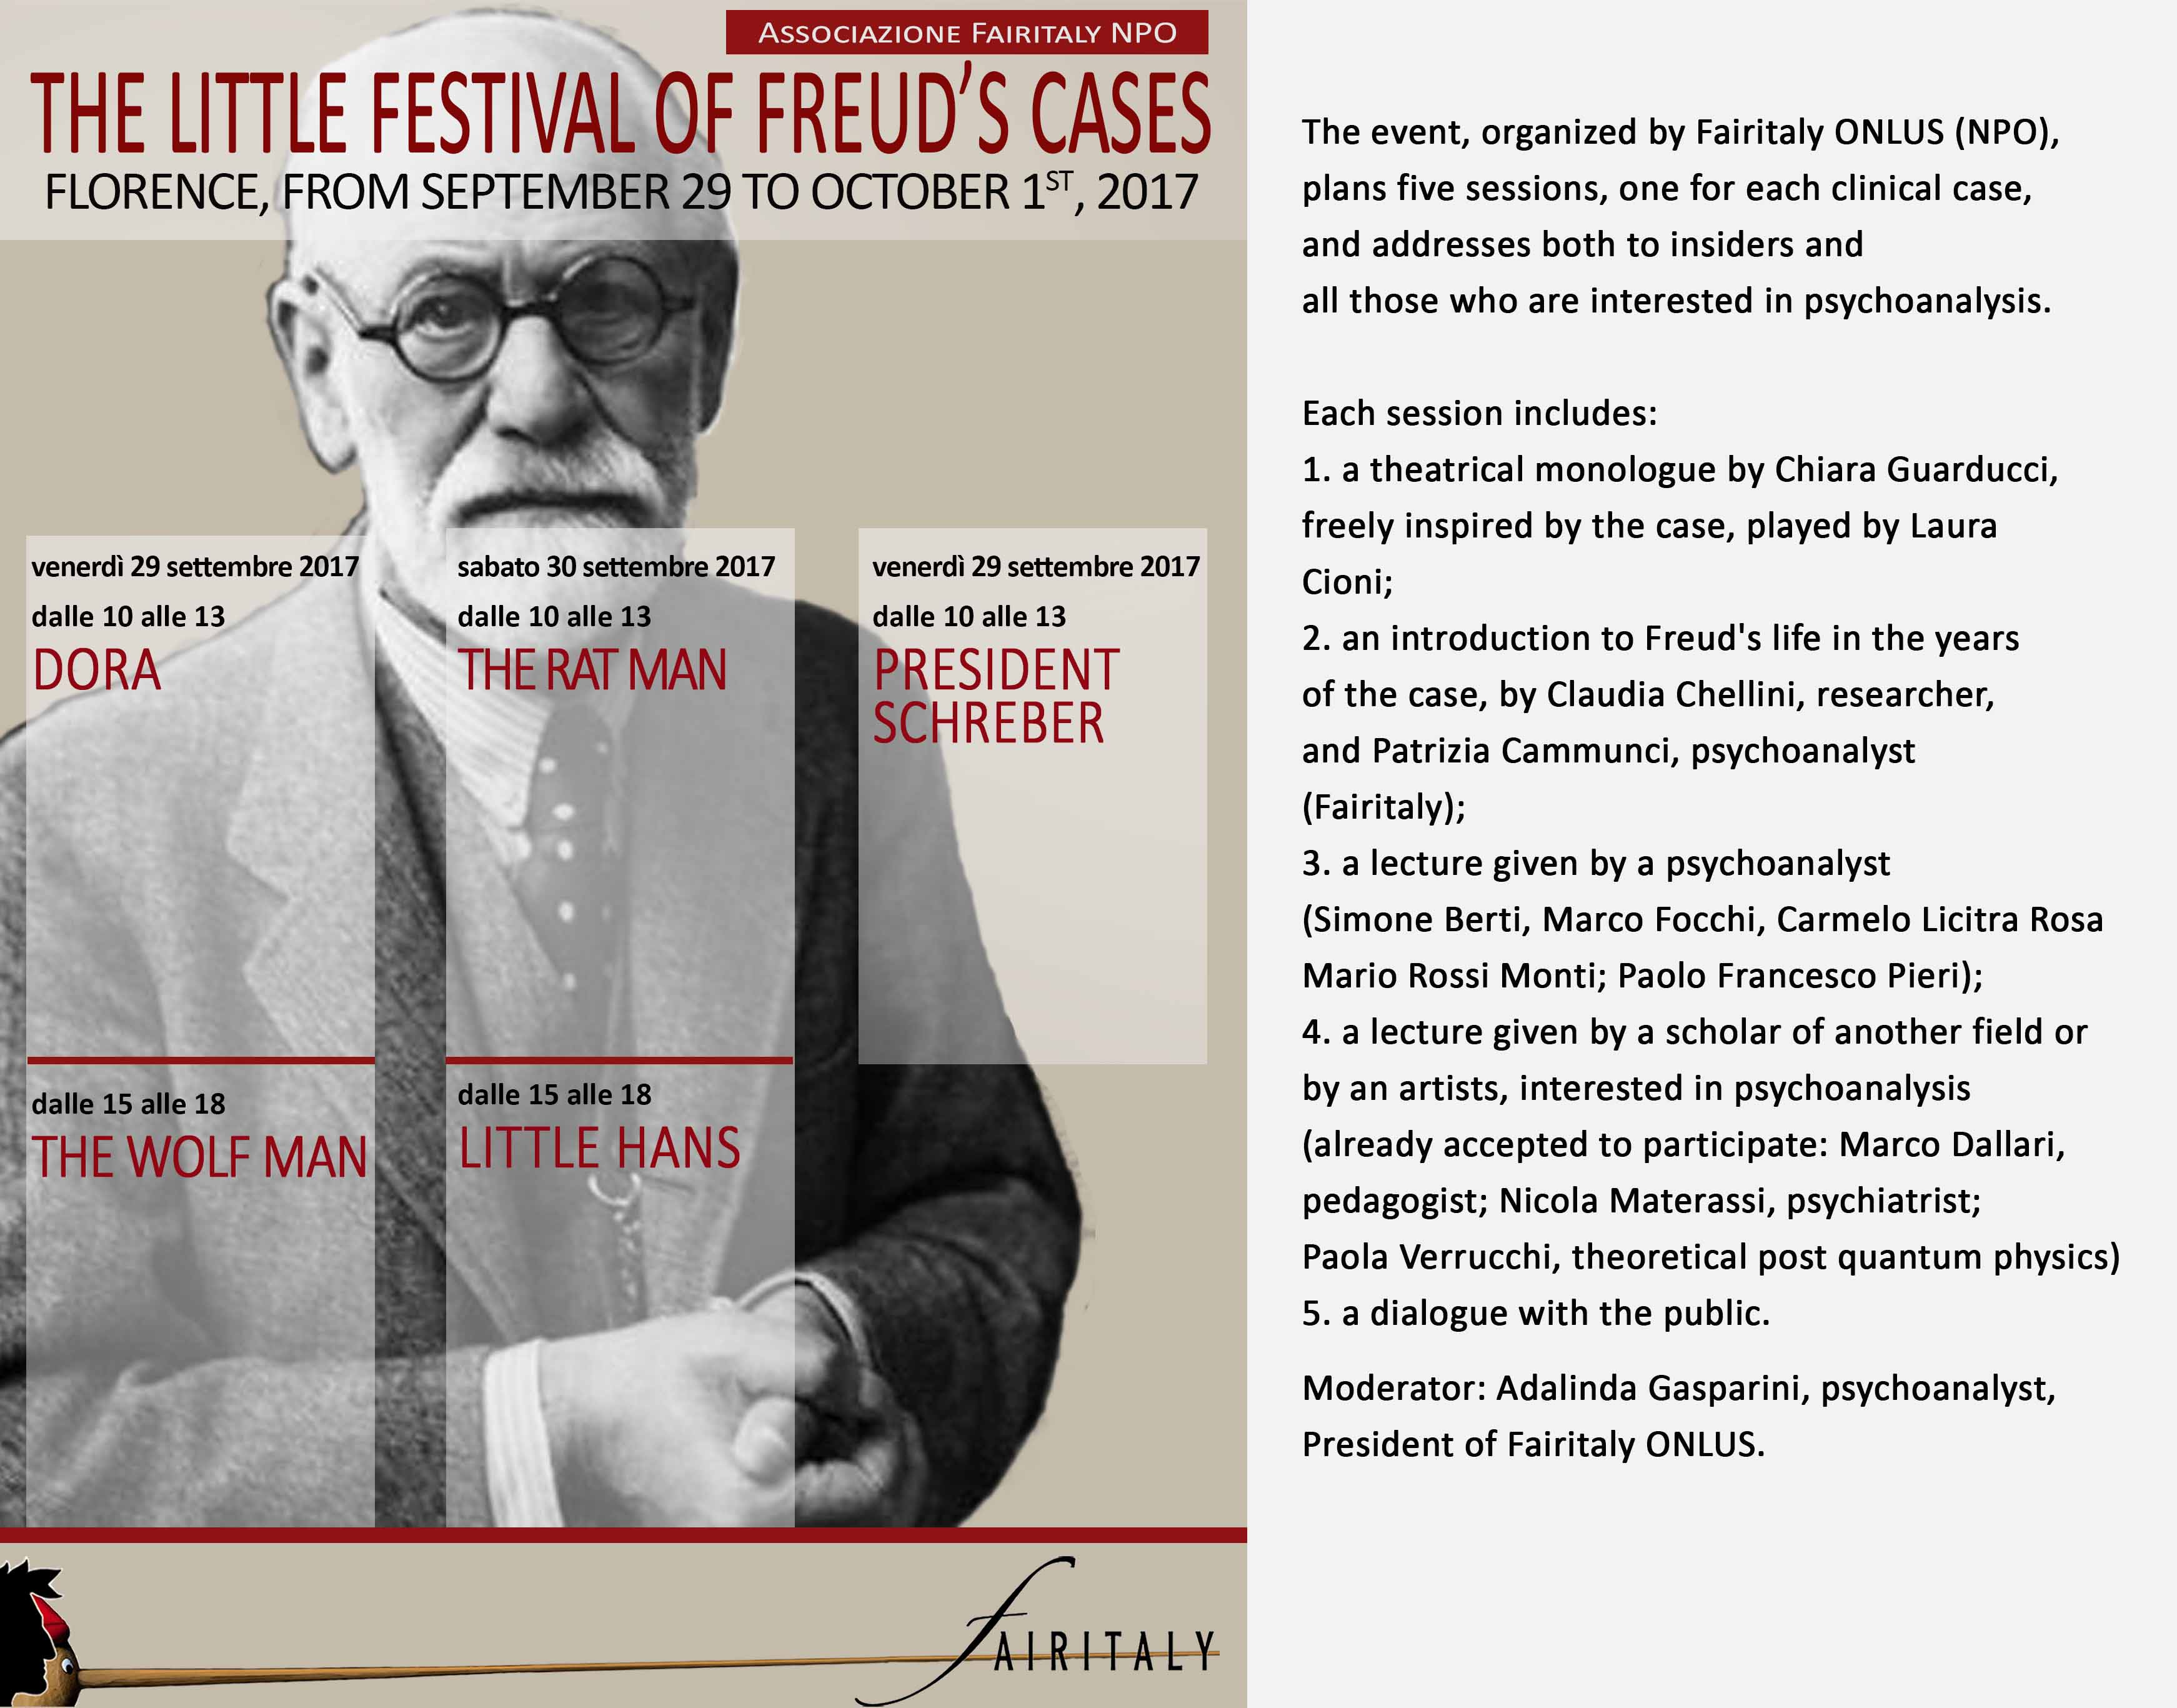 The Little Festival of Freud's Cases